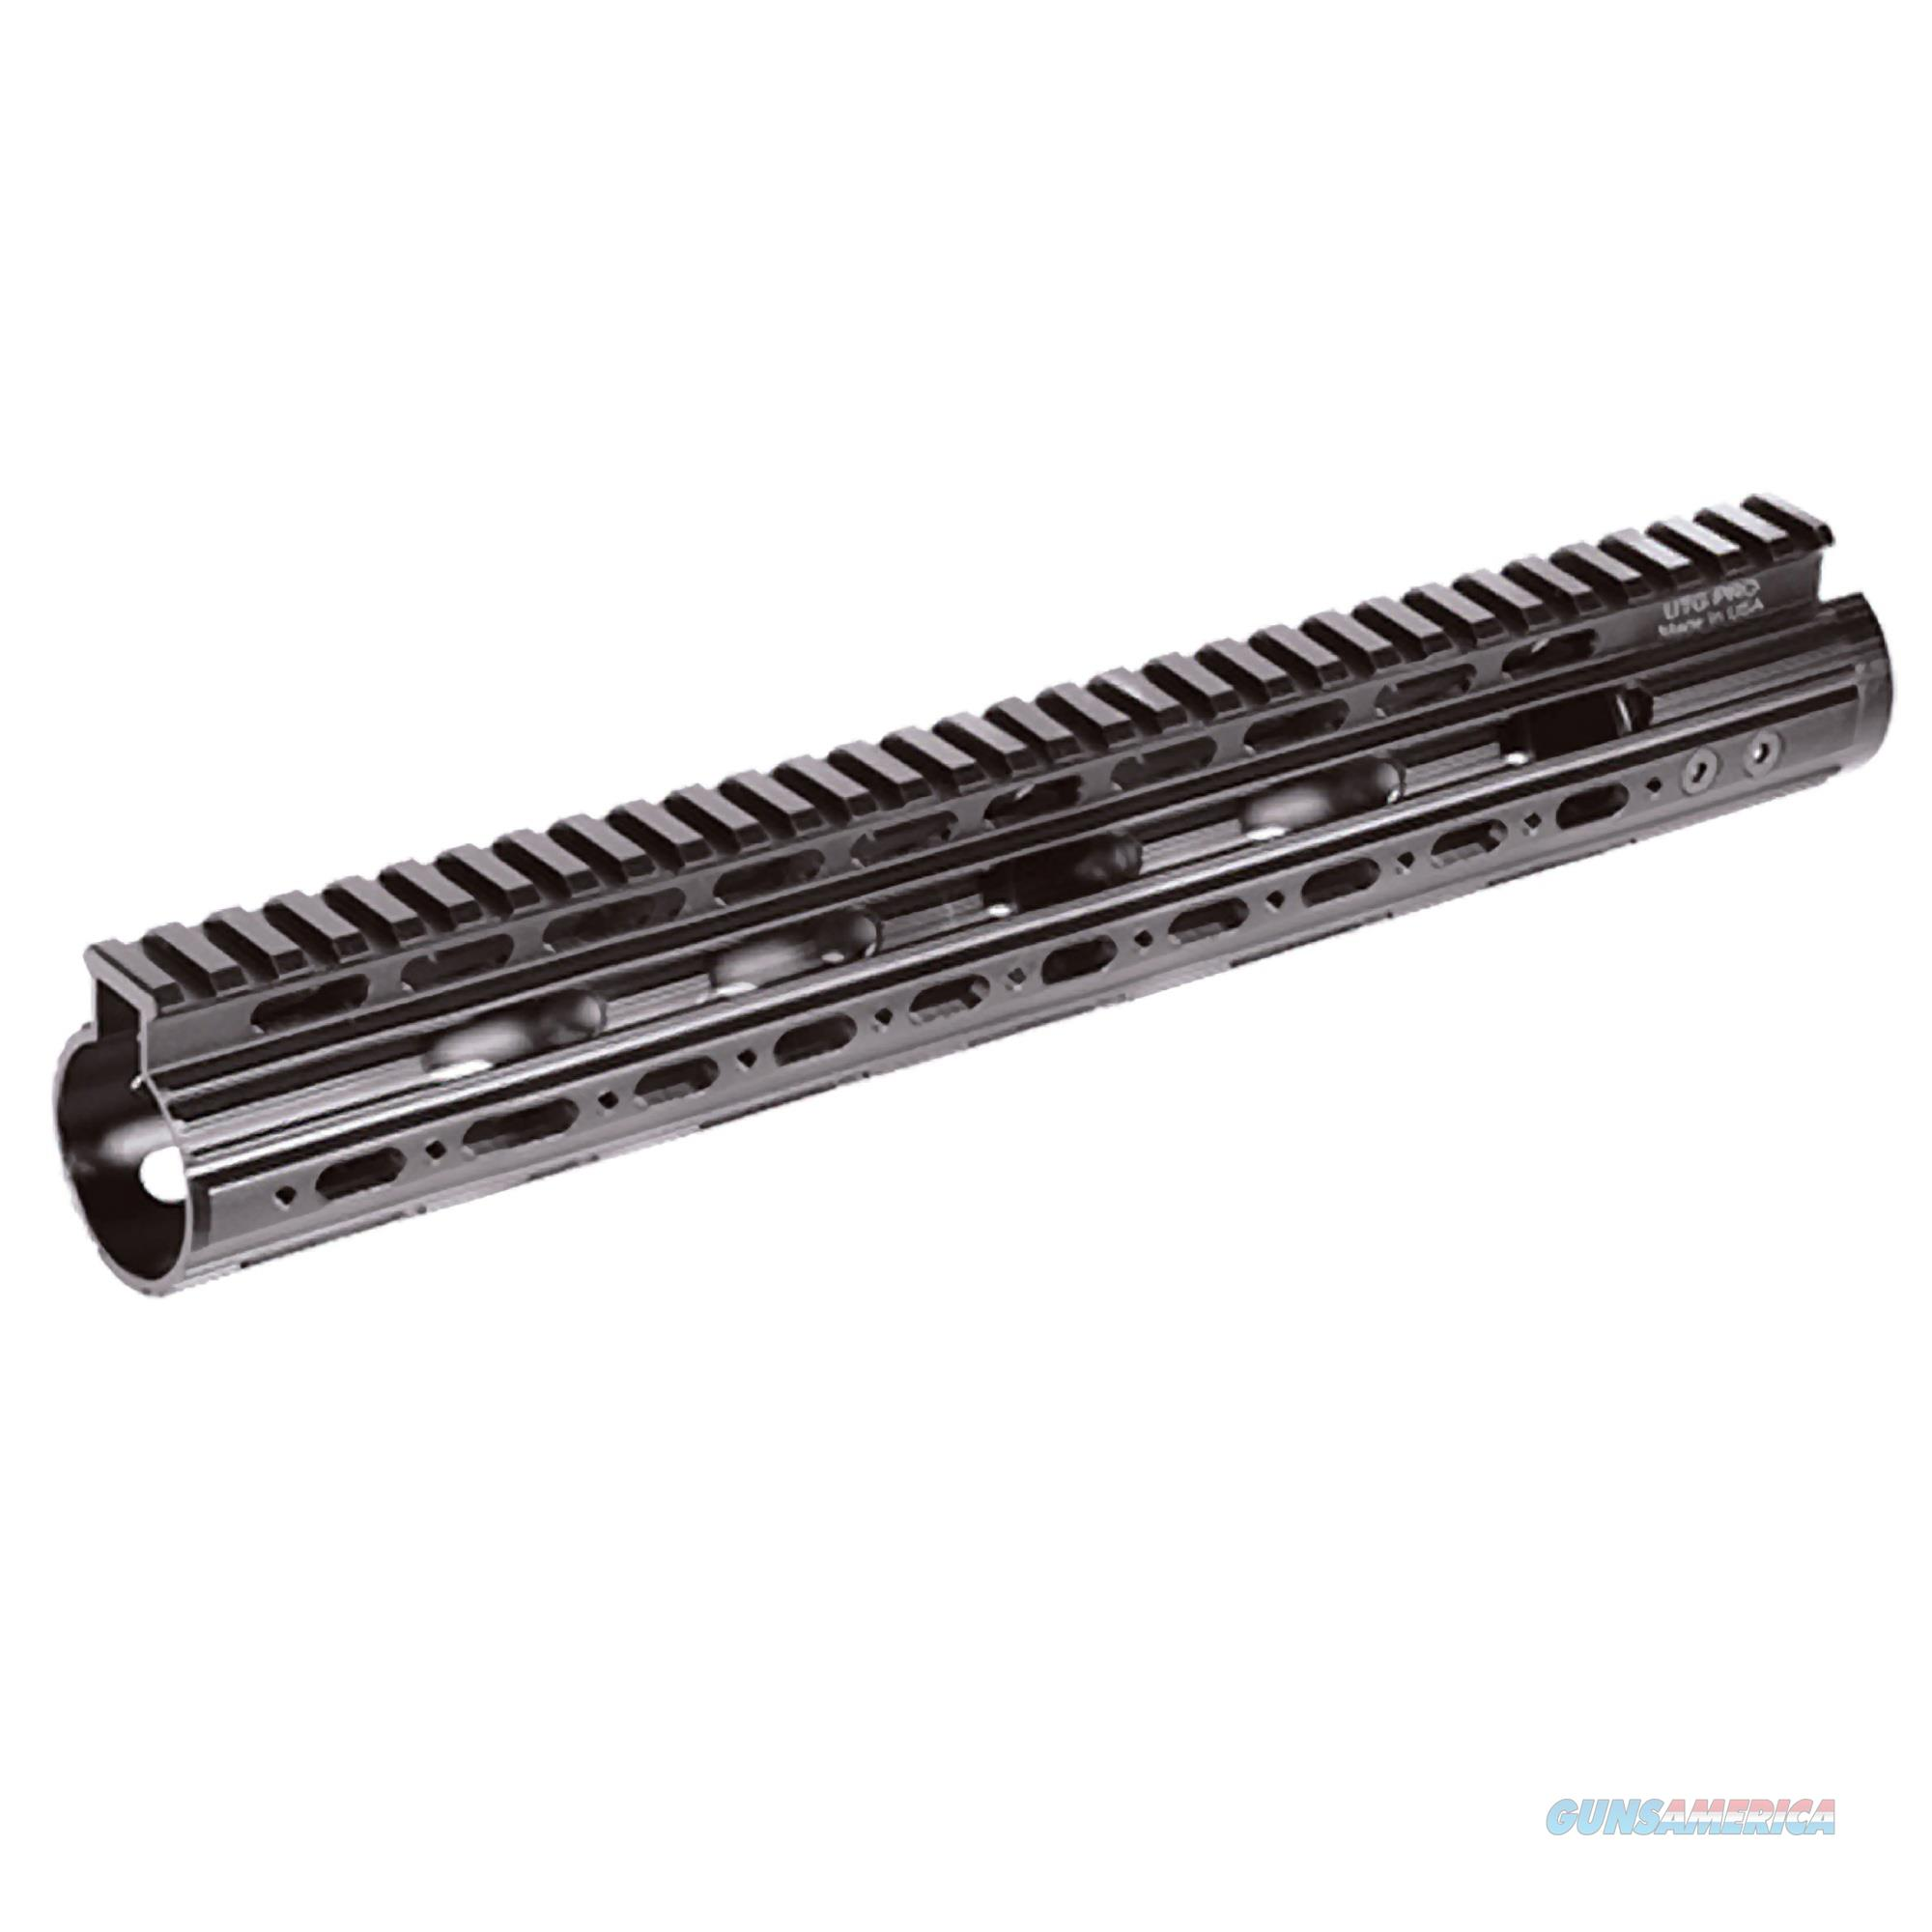 Leapers Ar15 Super Slim Free Float Handguard MTU006SS  Non-Guns > Gun Parts > Misc > Rifles